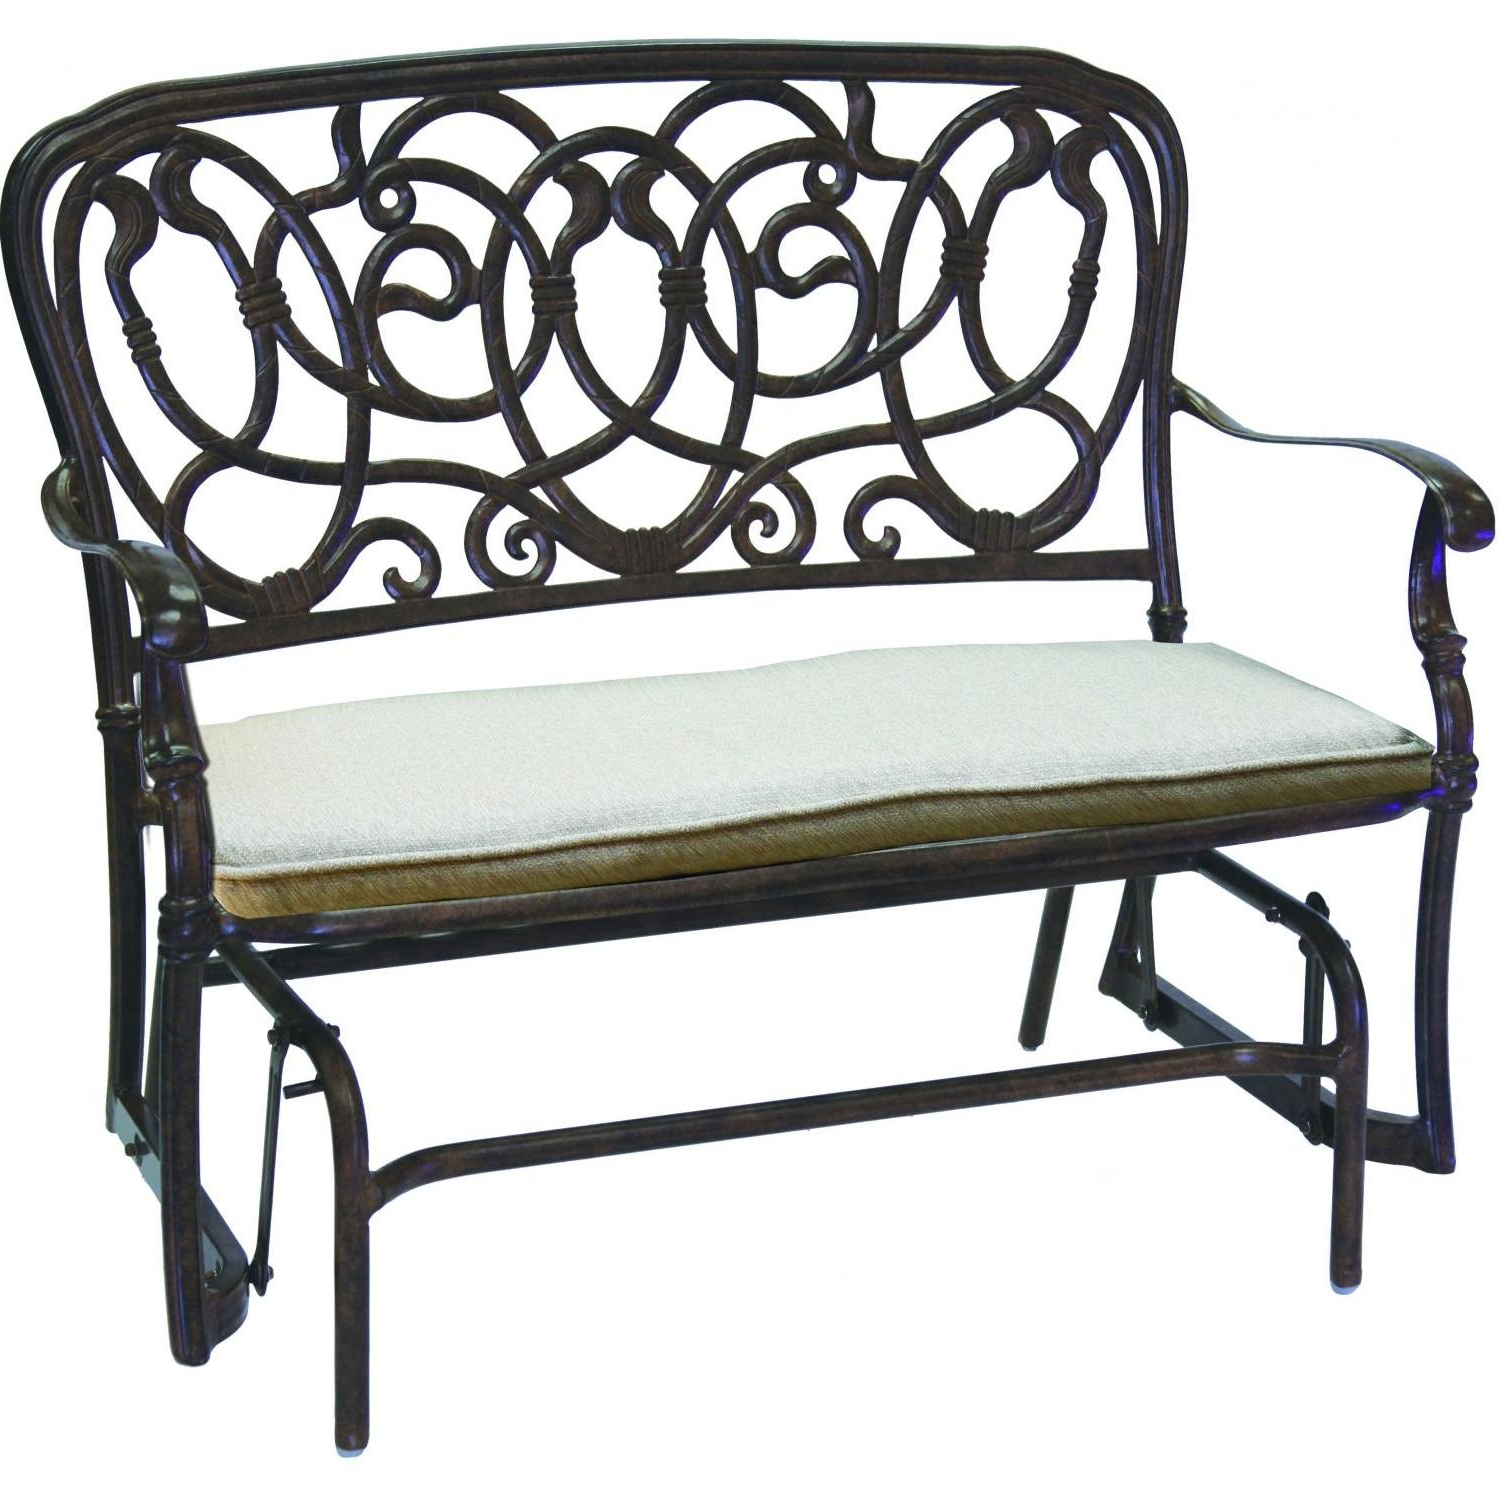 Darlee Florence 2 Piece Cast Aluminum Patio Bench Glider Conversation Seating Set – Antique Bronze Regarding Widely Used Aluminum Glider Benches With Cushion (View 30 of 30)